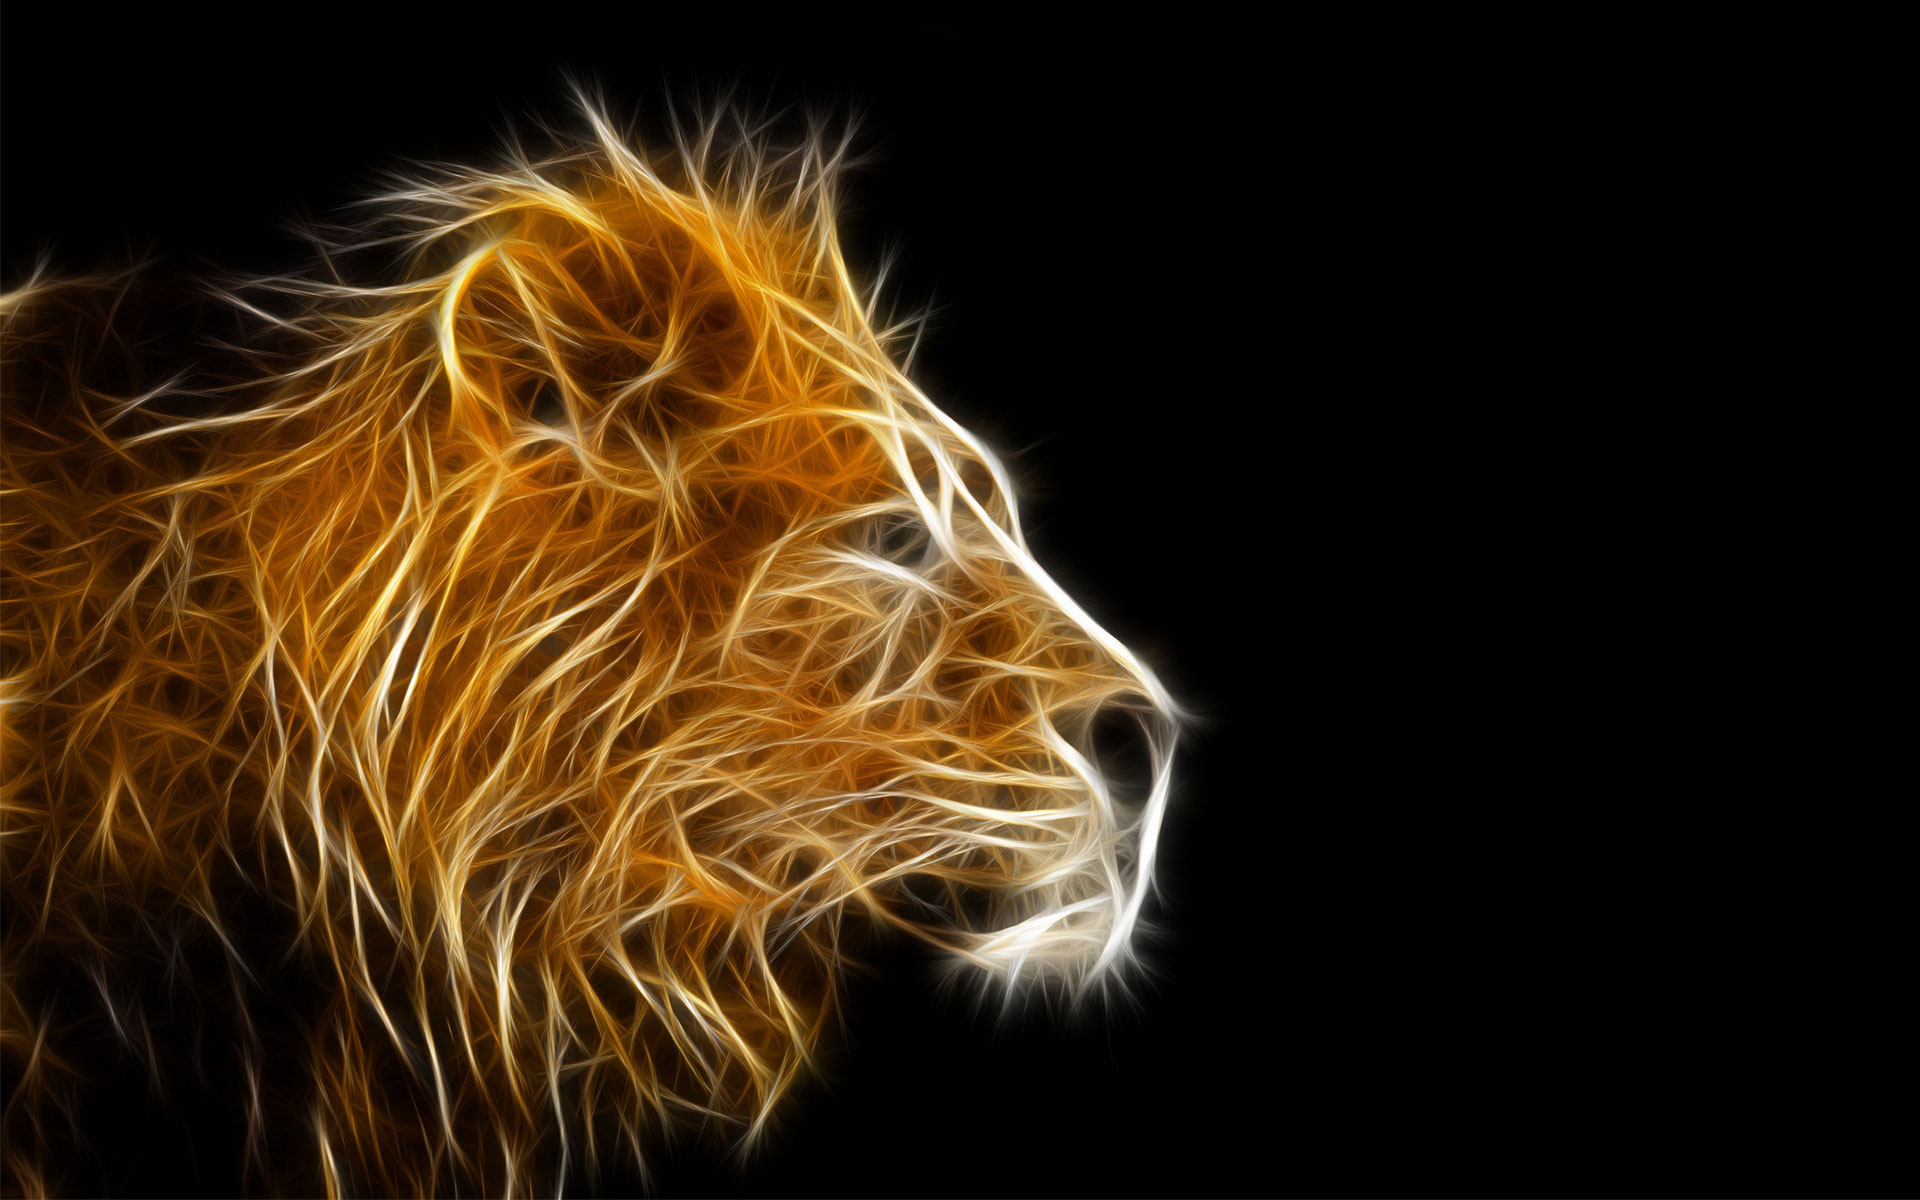 Best 3D Animal Wallpaper | HD Animated Animal Wallpaper